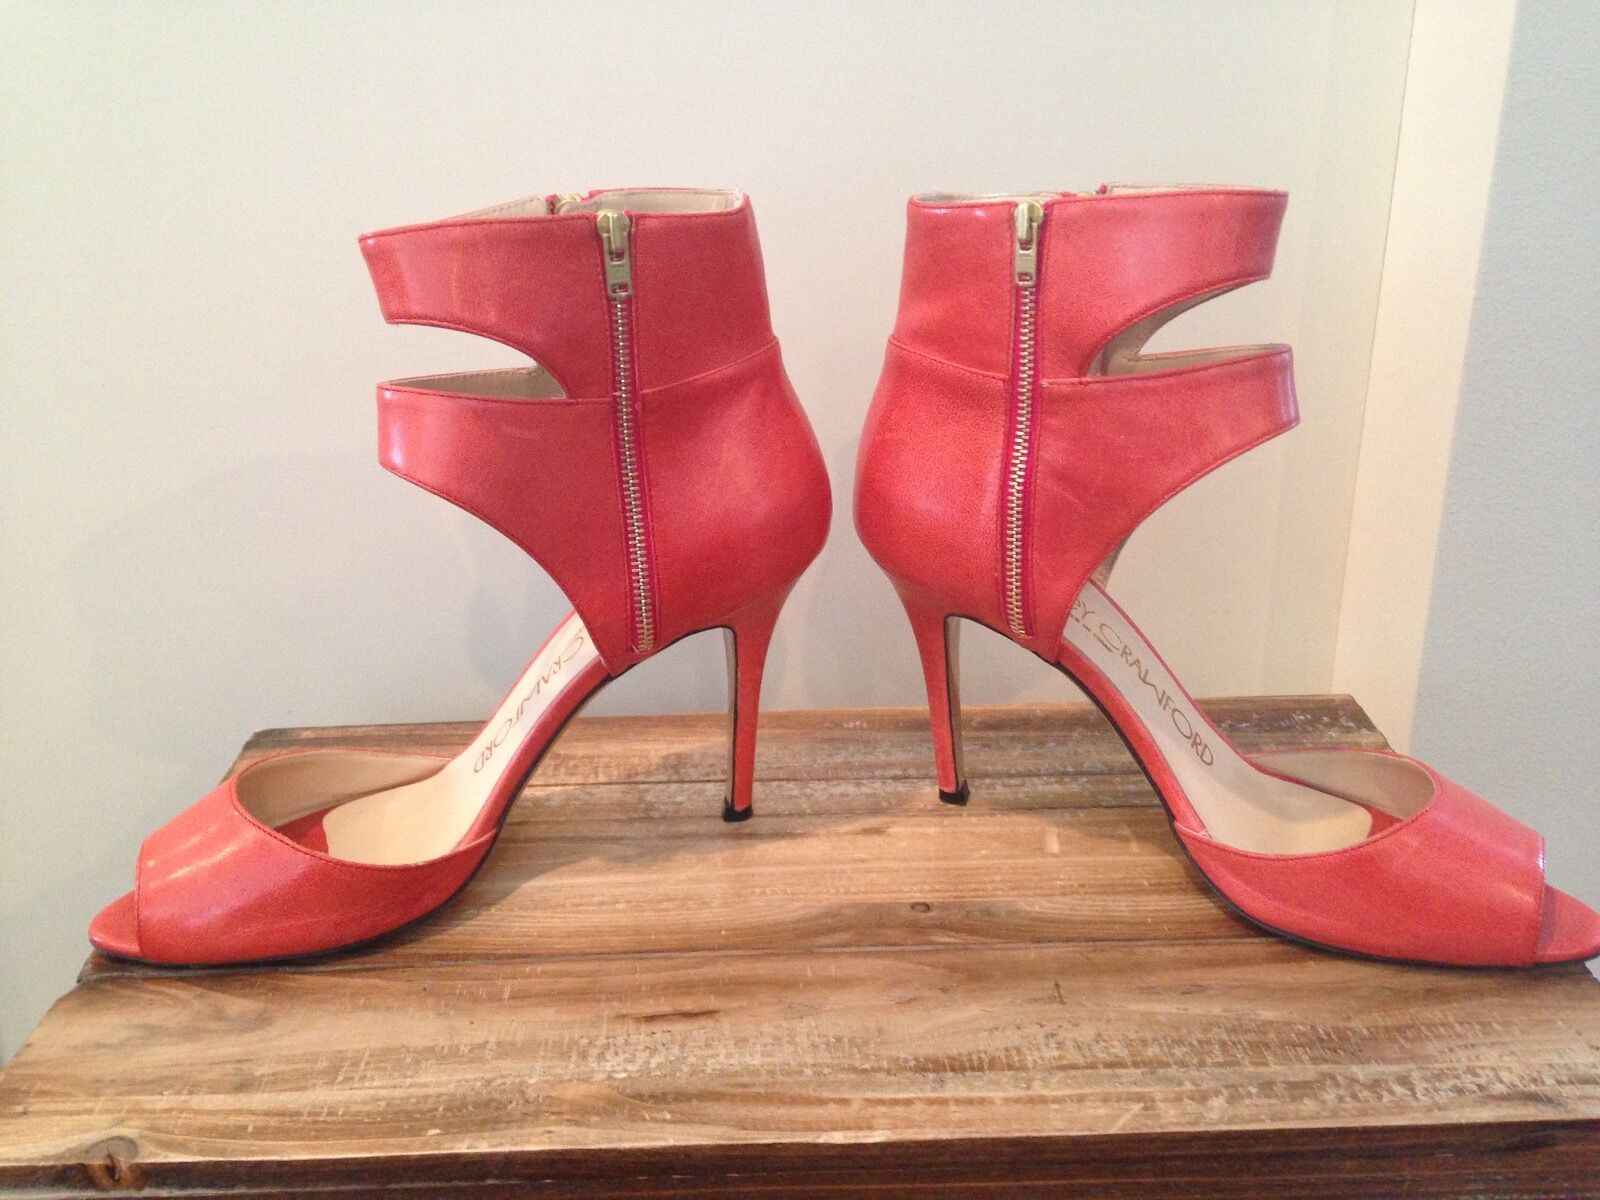 Leder heels/ booties by Courtney Crawford, coral color, Italian made, Gre 7.5